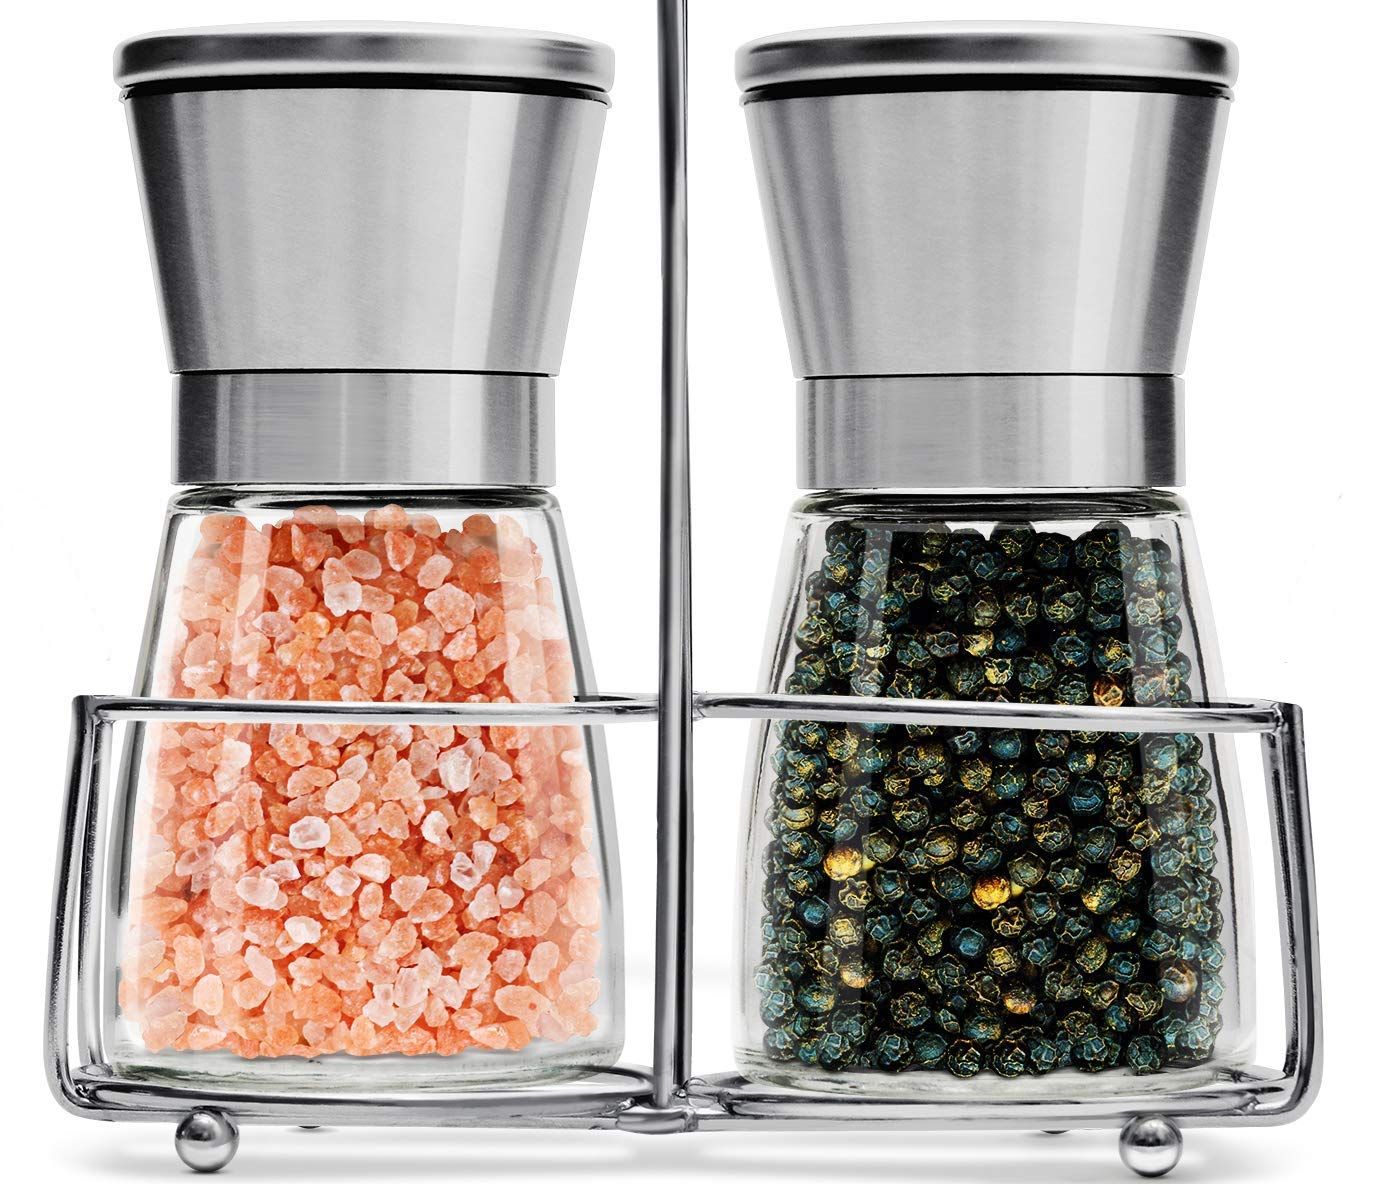 Salt and Pepper Grinder Set with Stand | Best Salt and Pepper Shakers - Adjustable Coarseness & Ceramic Mechanism - Premium Quality Stainless Steel & Glass - Salt and Pepper Mill - Perfect for Kitchen QWESEN